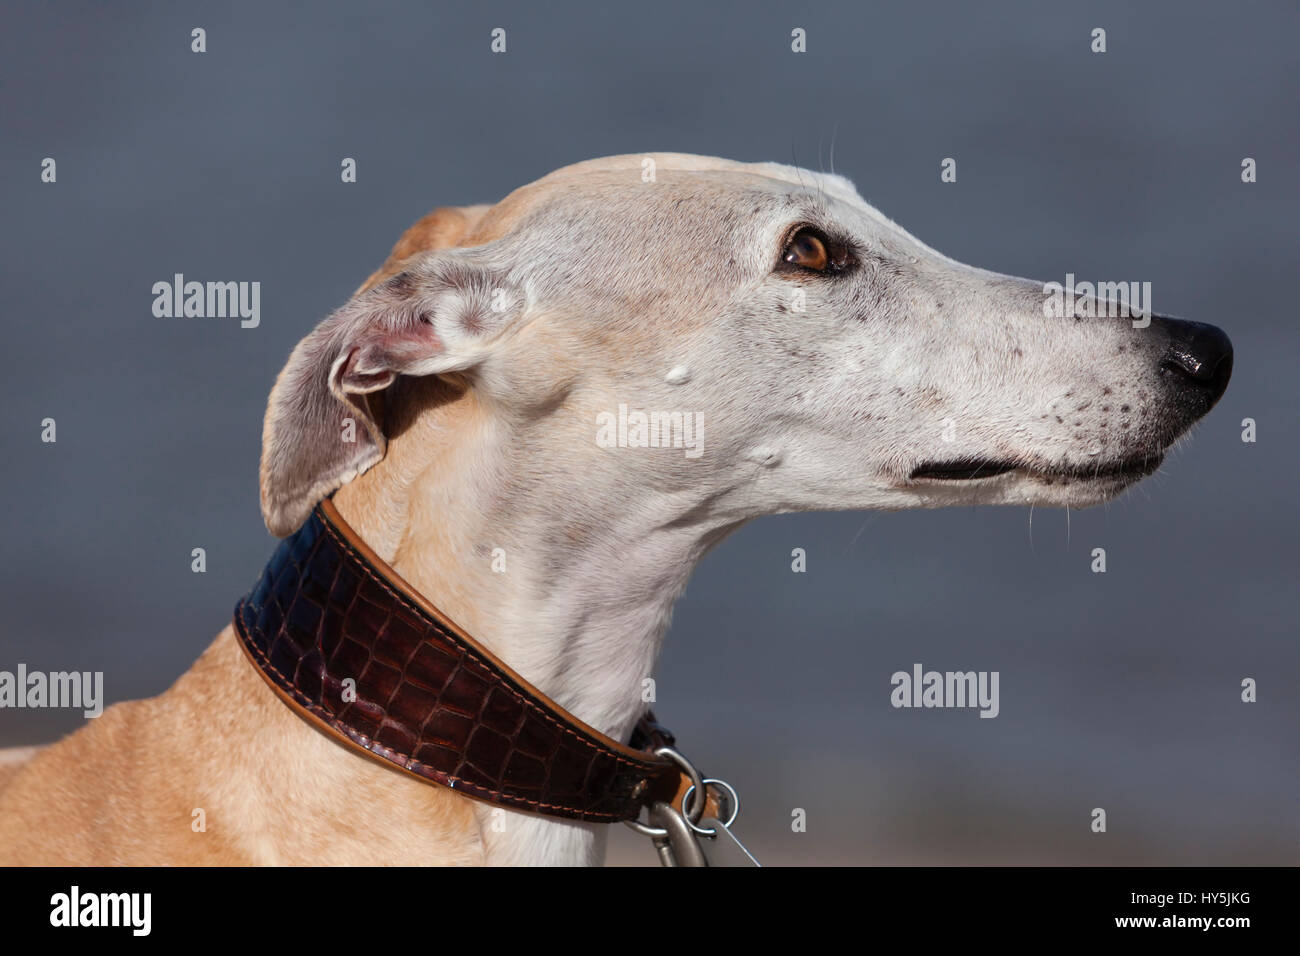 Outdoor portrait of Galgo Español or Spanish Greyhound - Stock Image